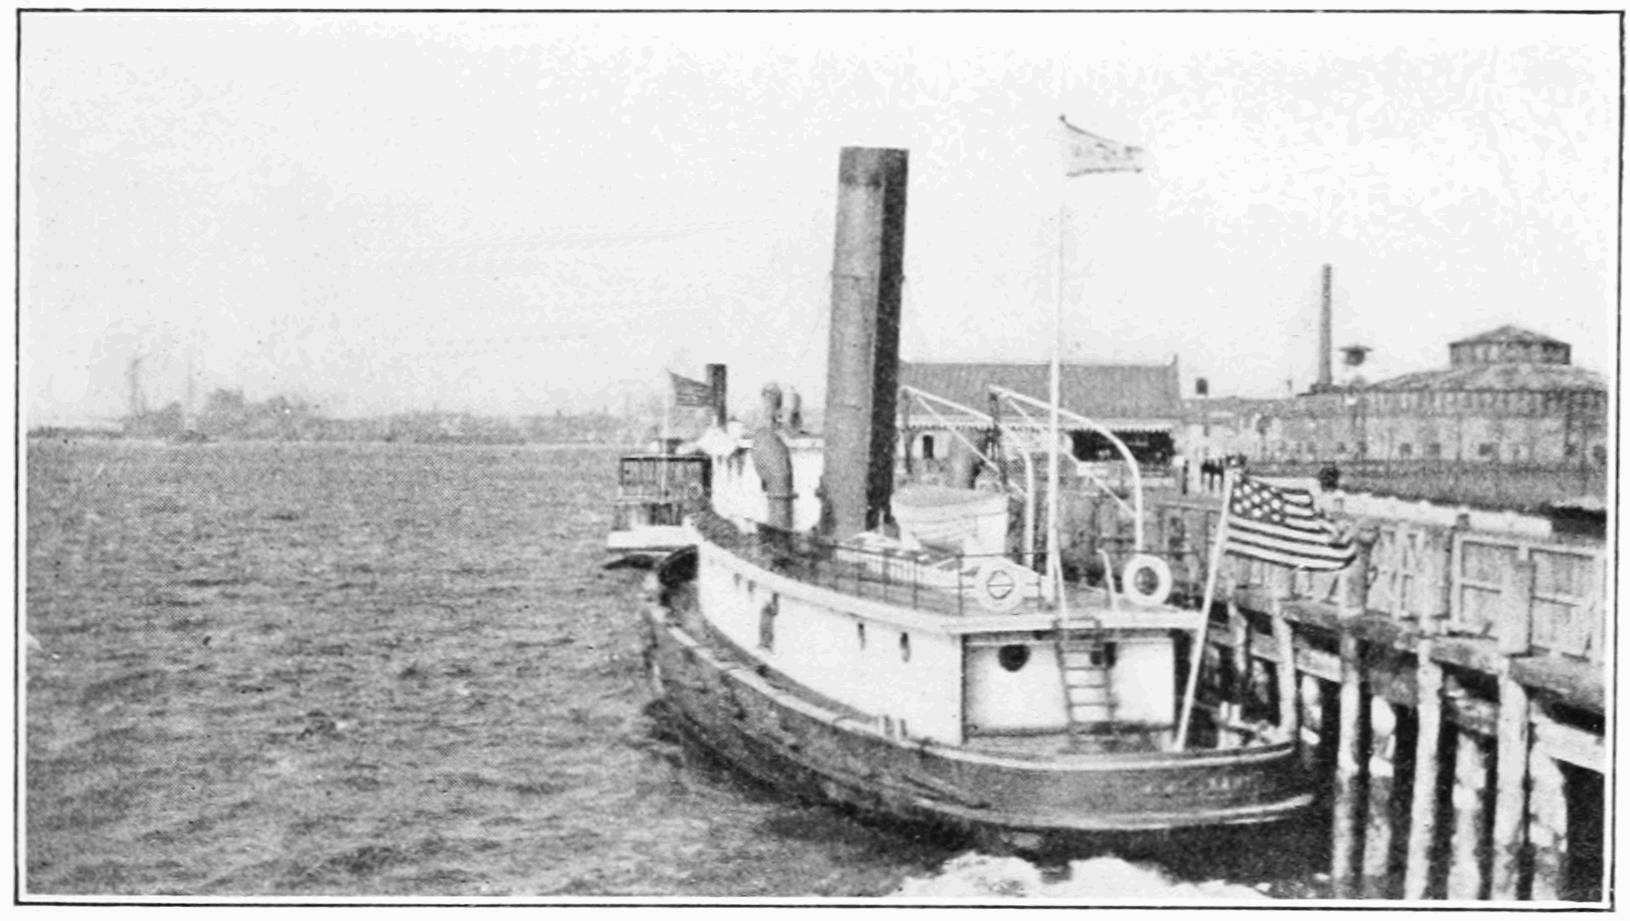 PSM V83 D319 Boarding cutter at ellis island.png